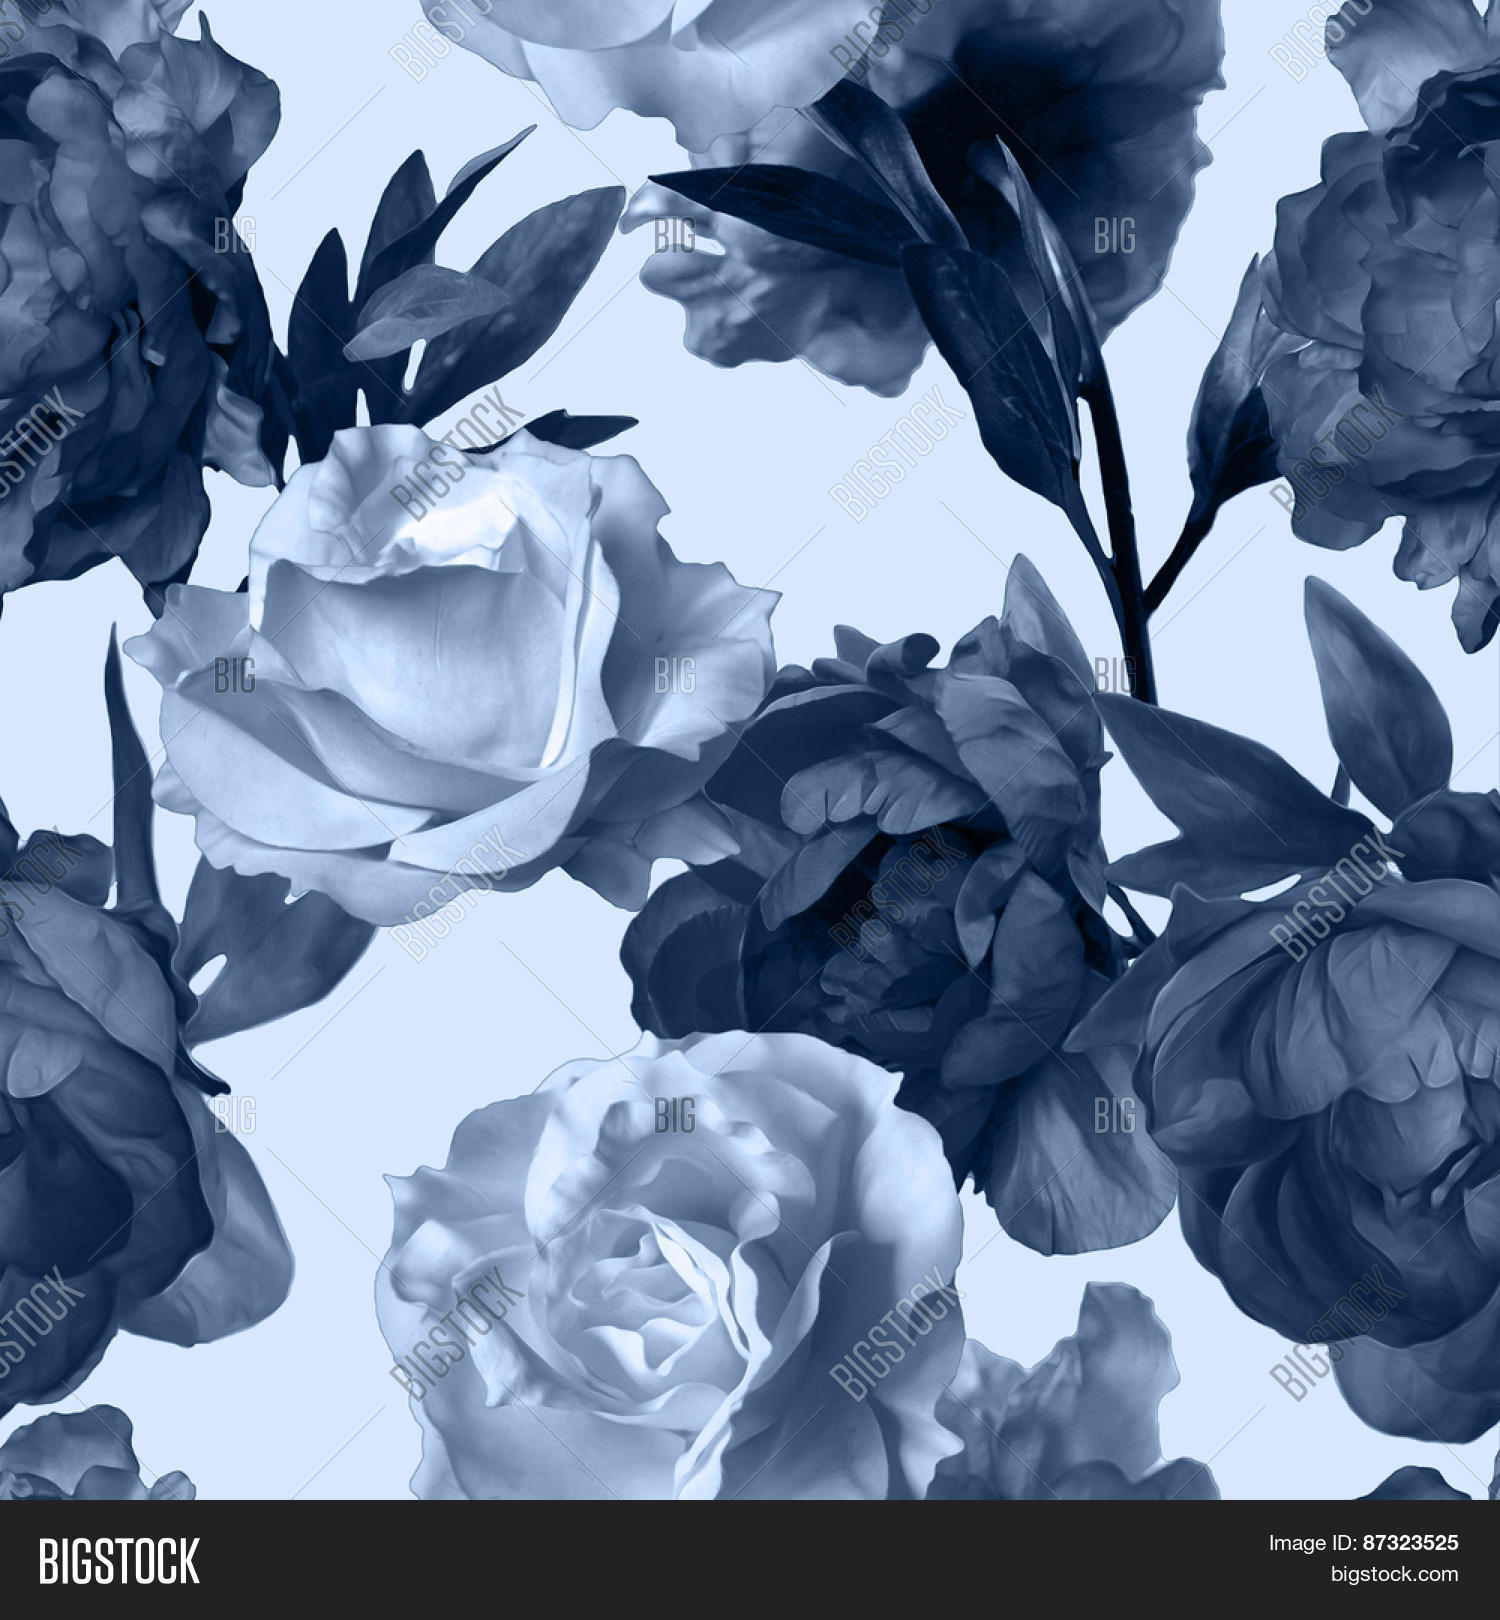 Art vintage monochrome watercolor floral seamless pattern with dark grey blue peonies and white roses isolated